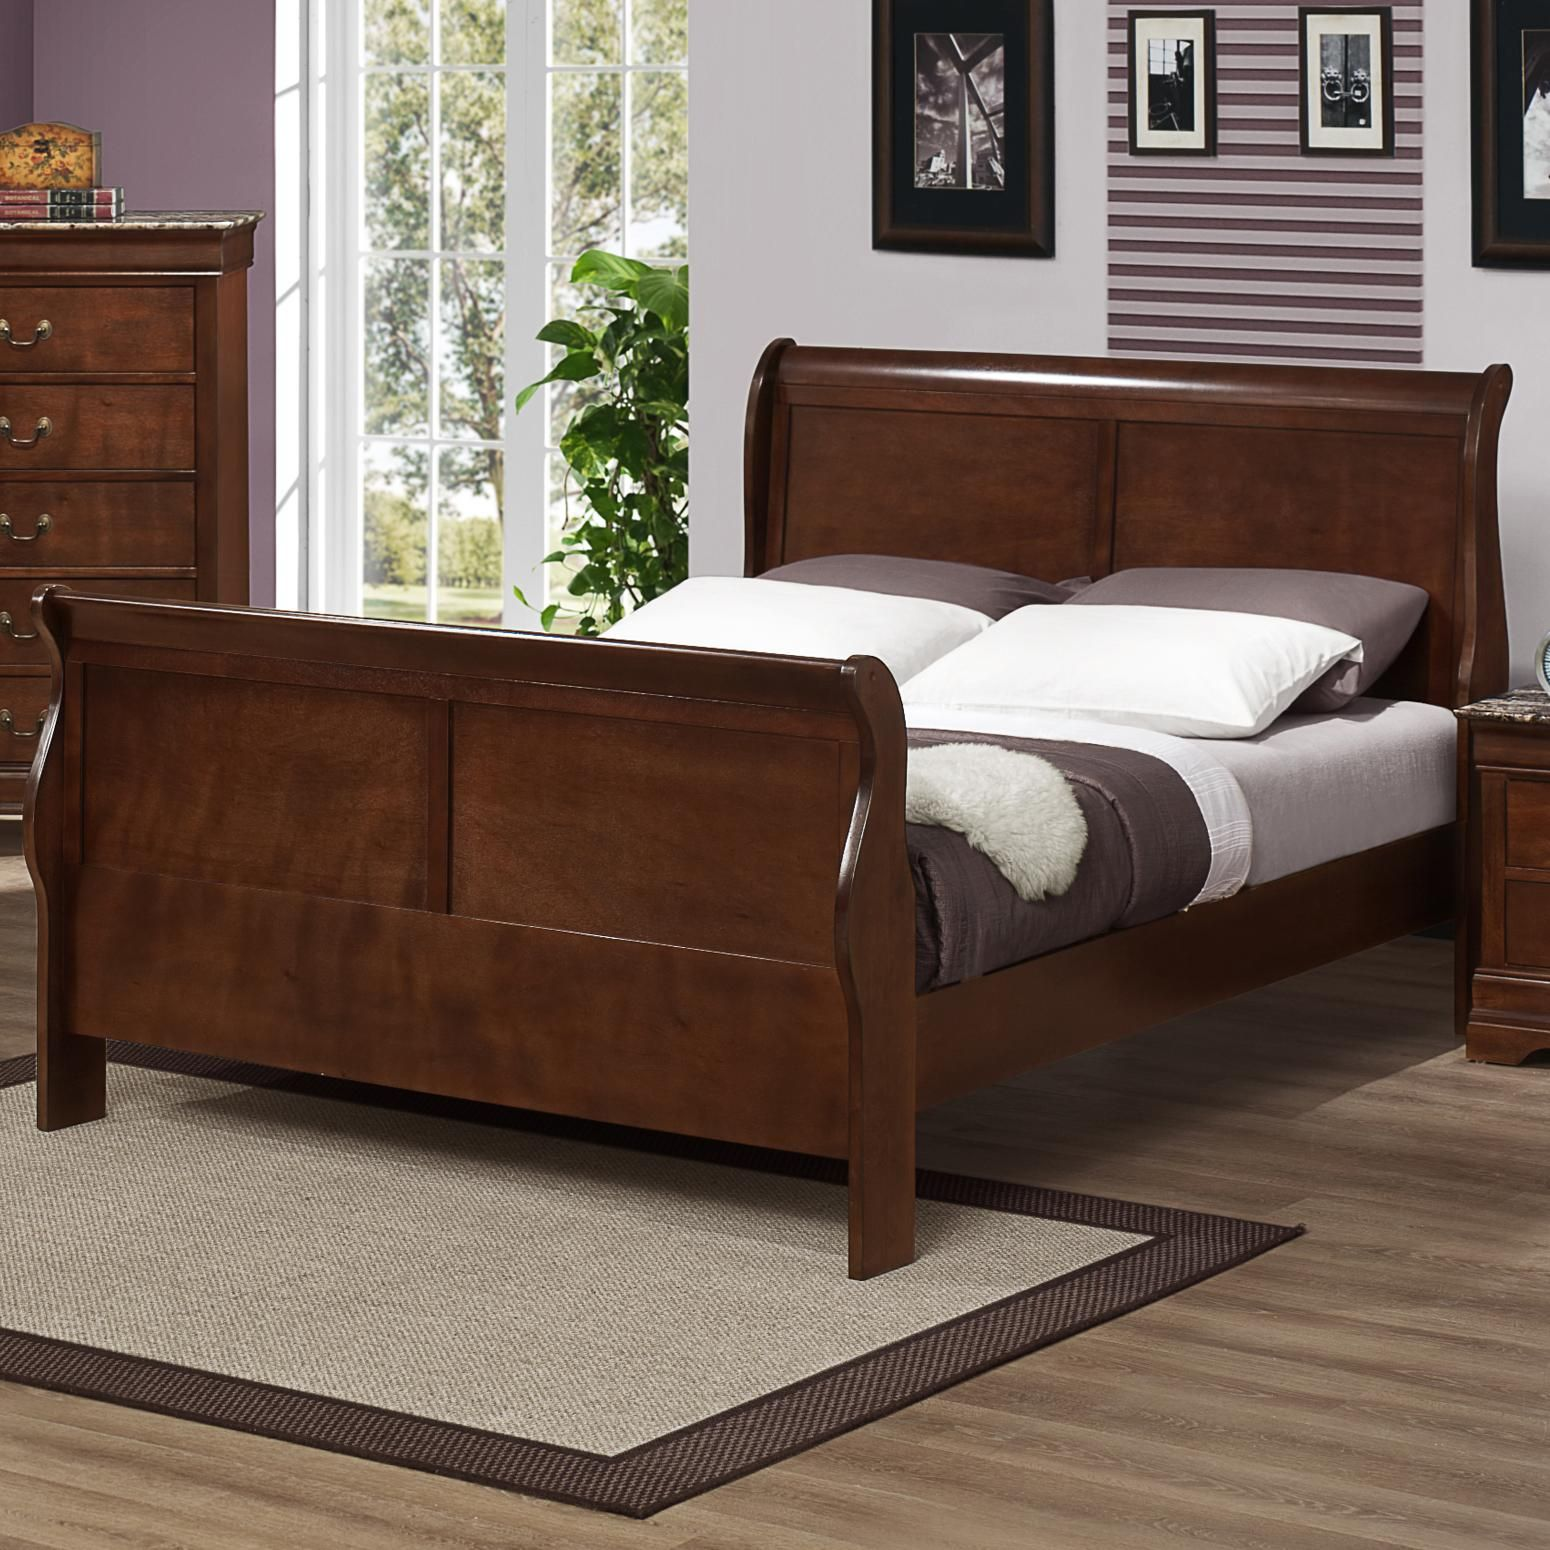 Marseille King Sleigh Bed By Austin Group Sleigh Beds Rustic